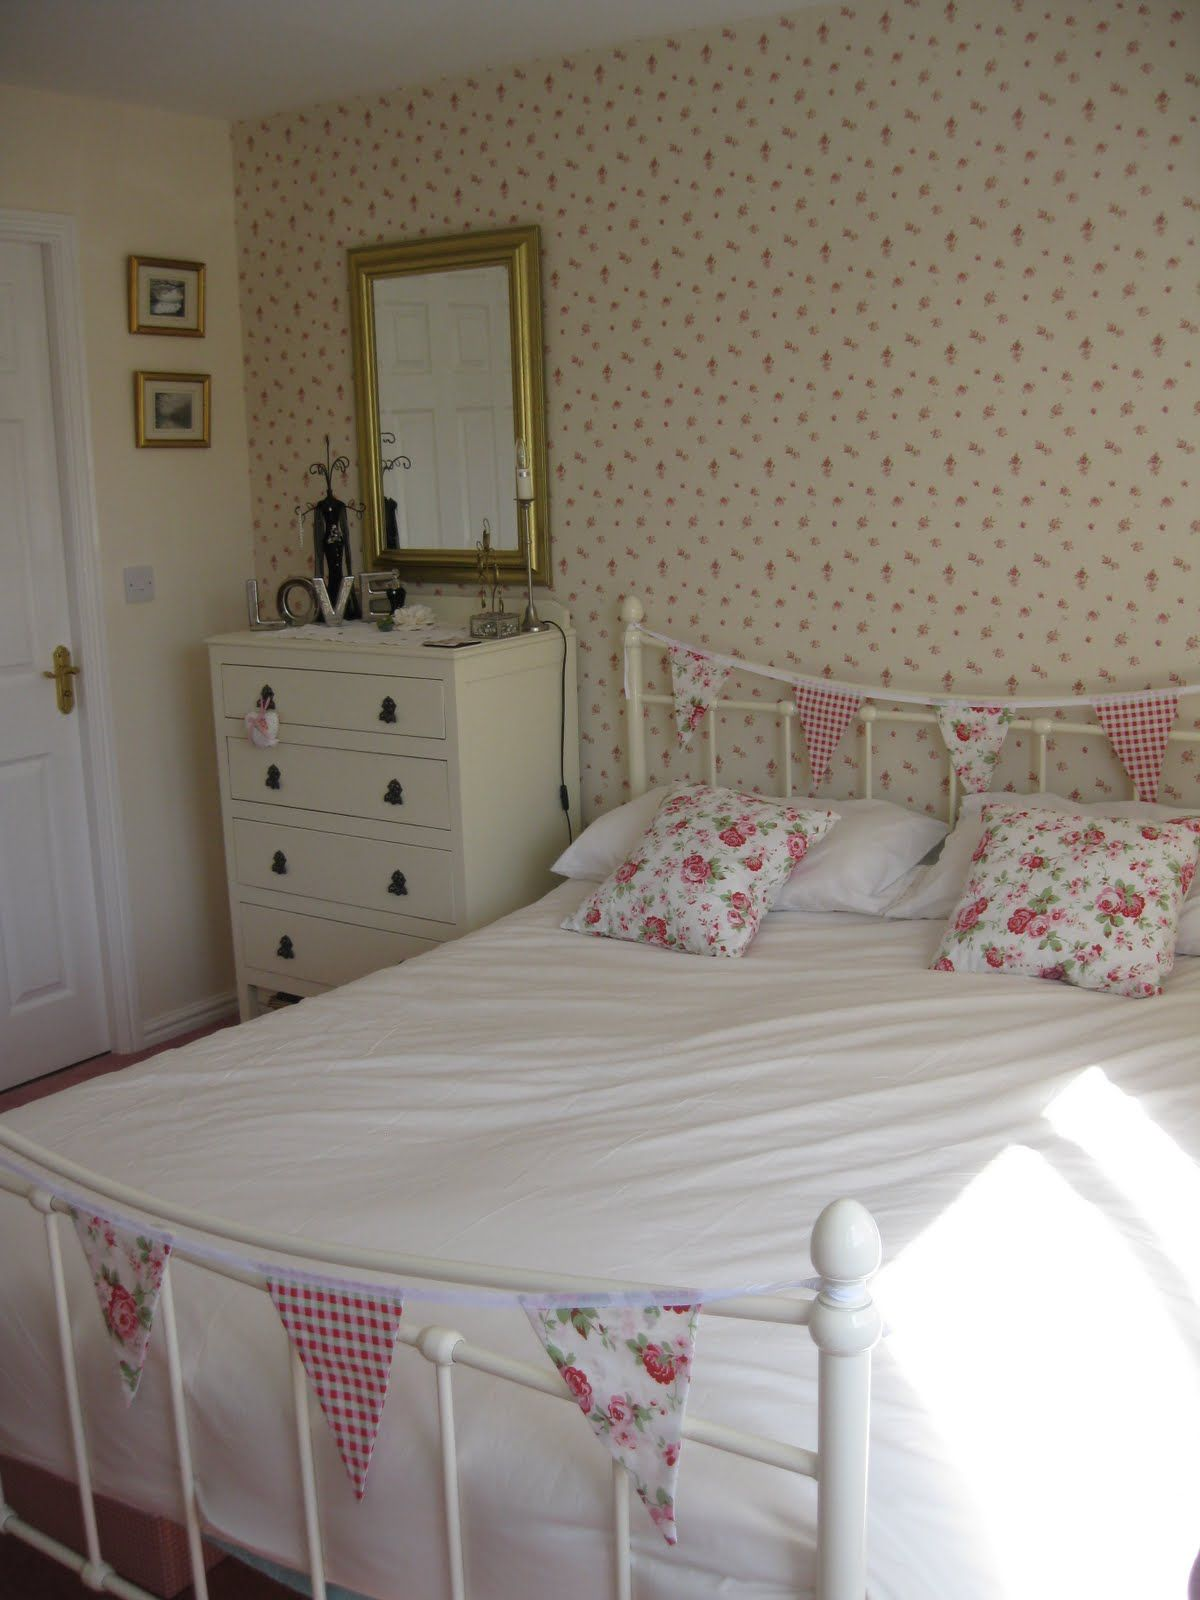 Best Bedroom Love The Wallpaper And Bunting On The Bed 400 x 300